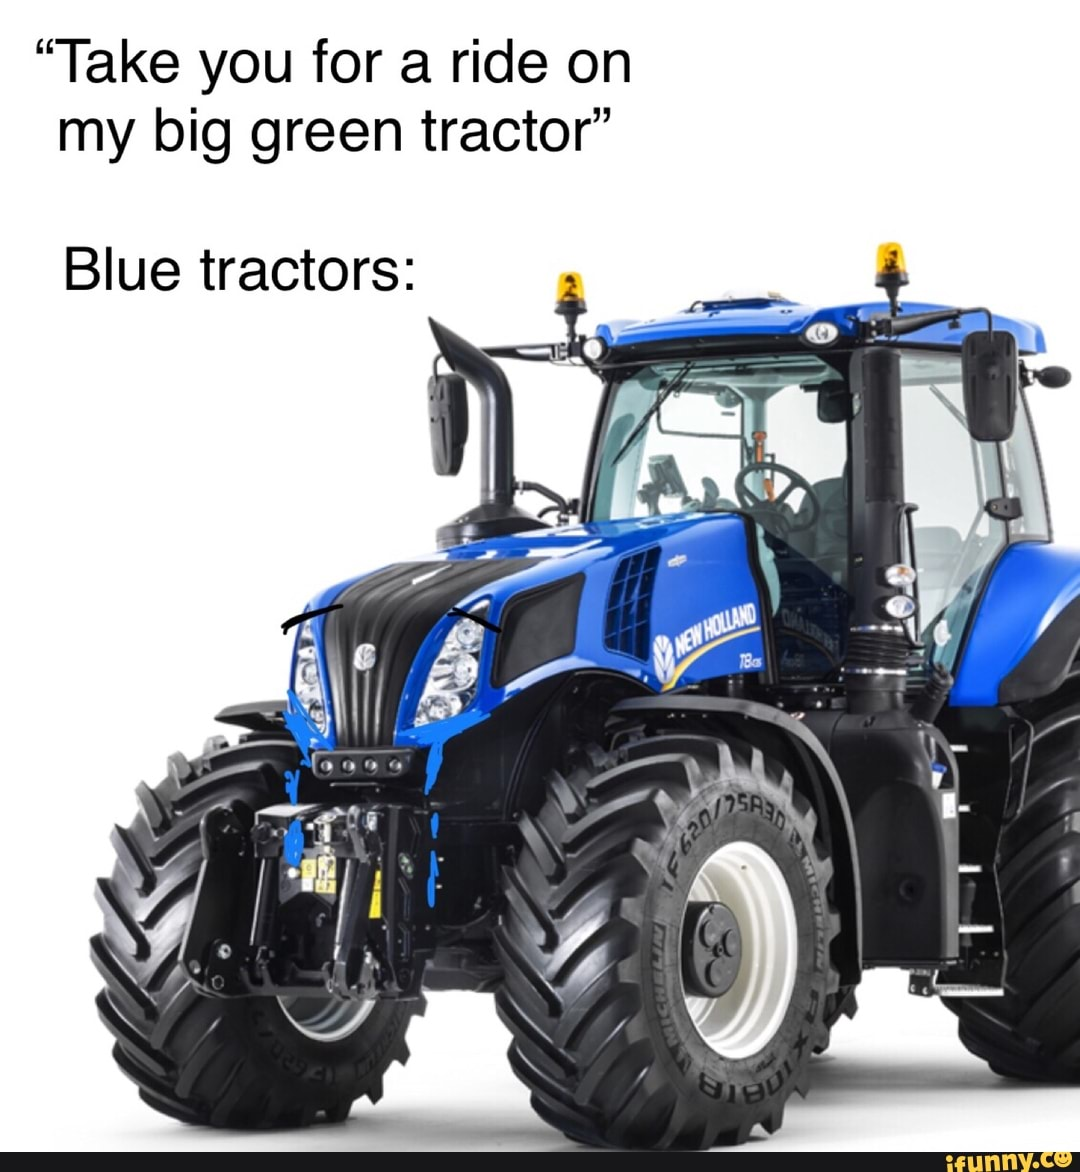 Take You For A Ride On My Big Green Tractor Blue Tractors